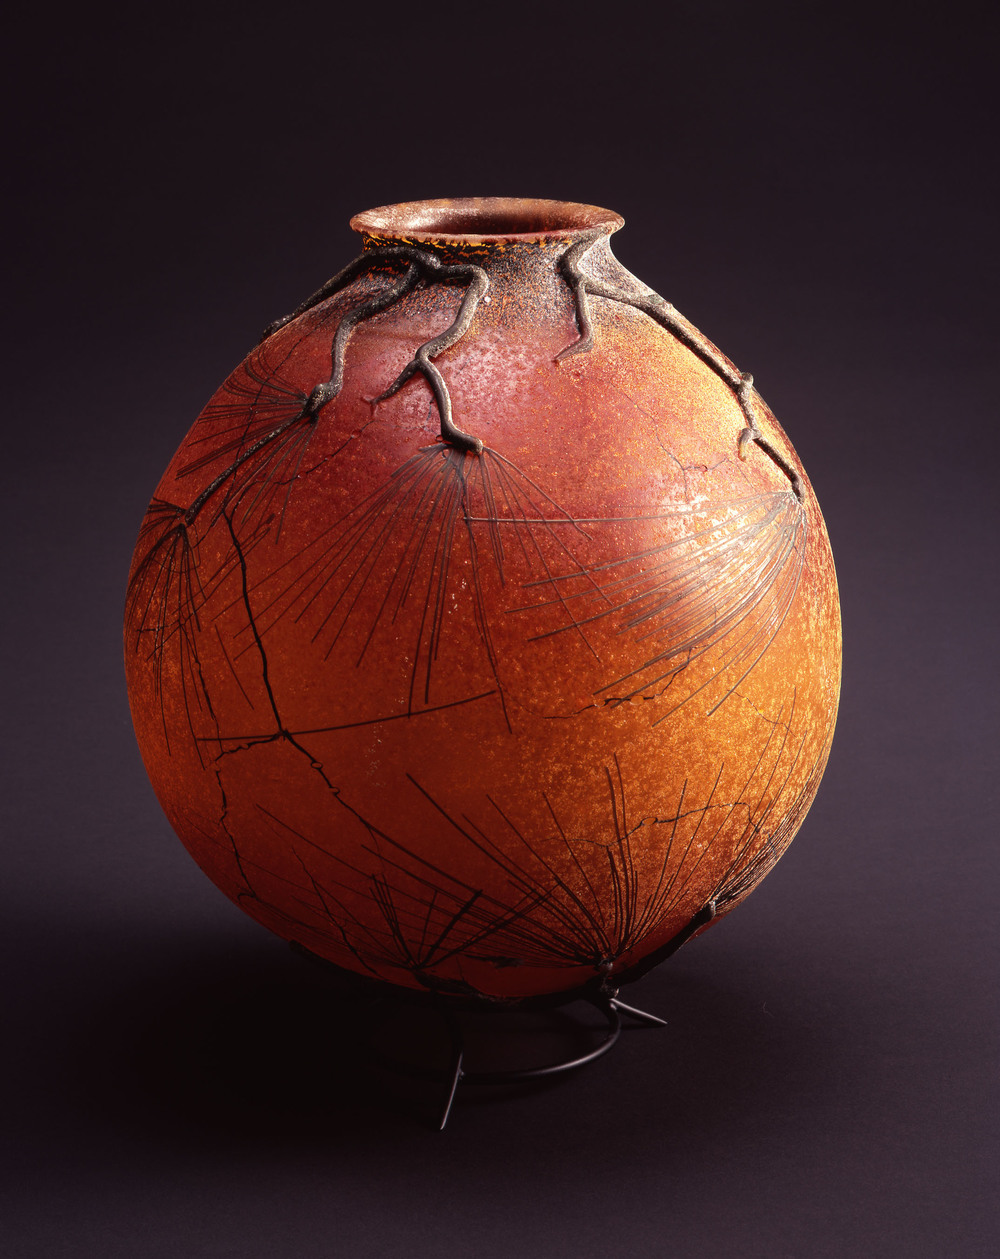 William Morris,  Globe Vessel with Ponderosa Pine Boughs,  (2004, glass, 14 1/8 x 12 x 12 inches), WM.41